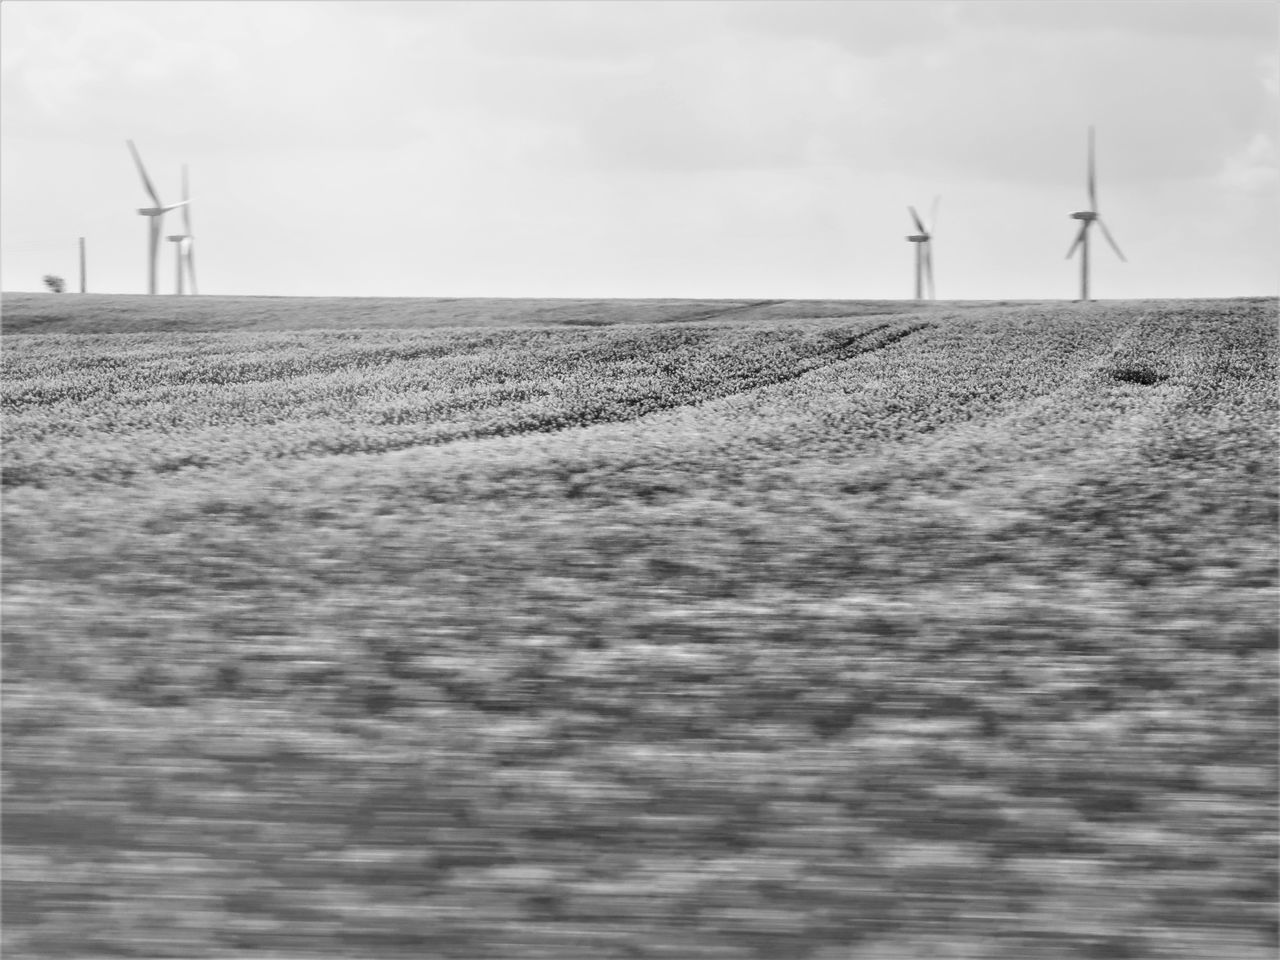 wind turbine, wind power, windmill, alternative energy, environmental conservation, renewable energy, industrial windmill, fuel and power generation, field, sky, landscape, rural scene, day, outdoors, nature, tranquility, agriculture, no people, traditional windmill, scenics, beauty in nature